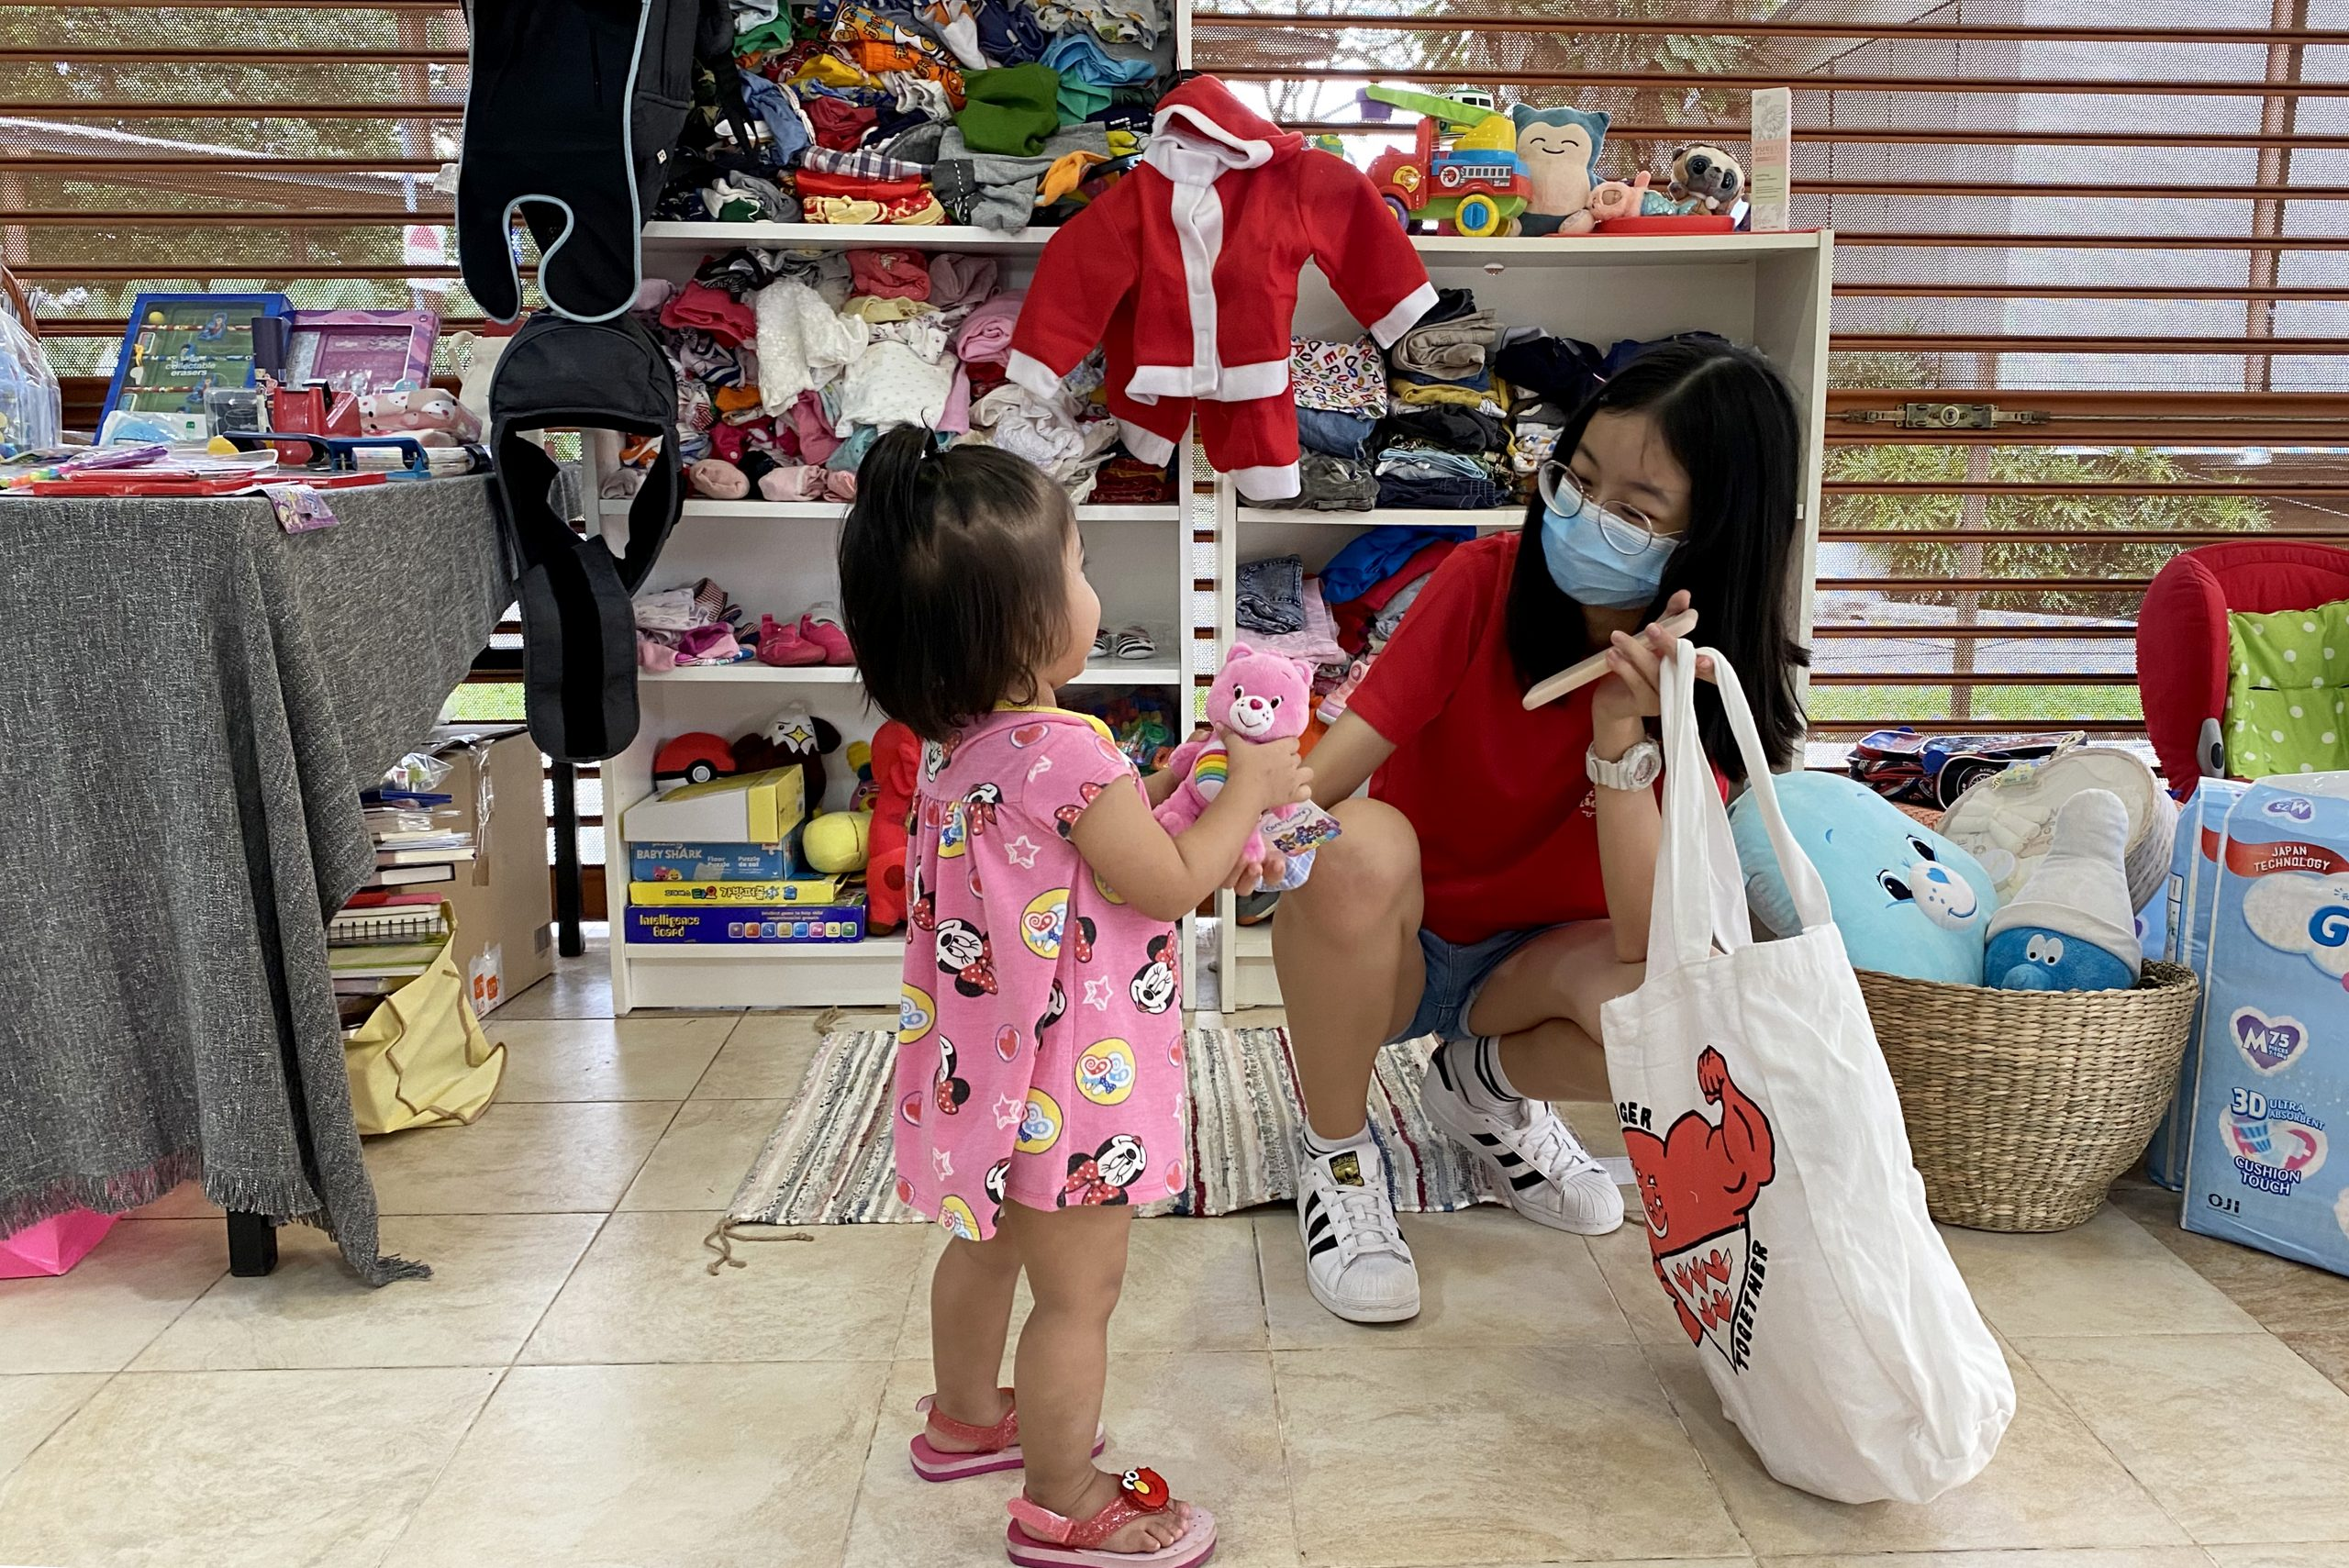 Many children were excited to be able to choose an item for themselves, which were often toys. To give family members enough time to explore the collections atCheng San Chapalang Club, volunteers would interact or look after the children while the adults browse for items they would like.